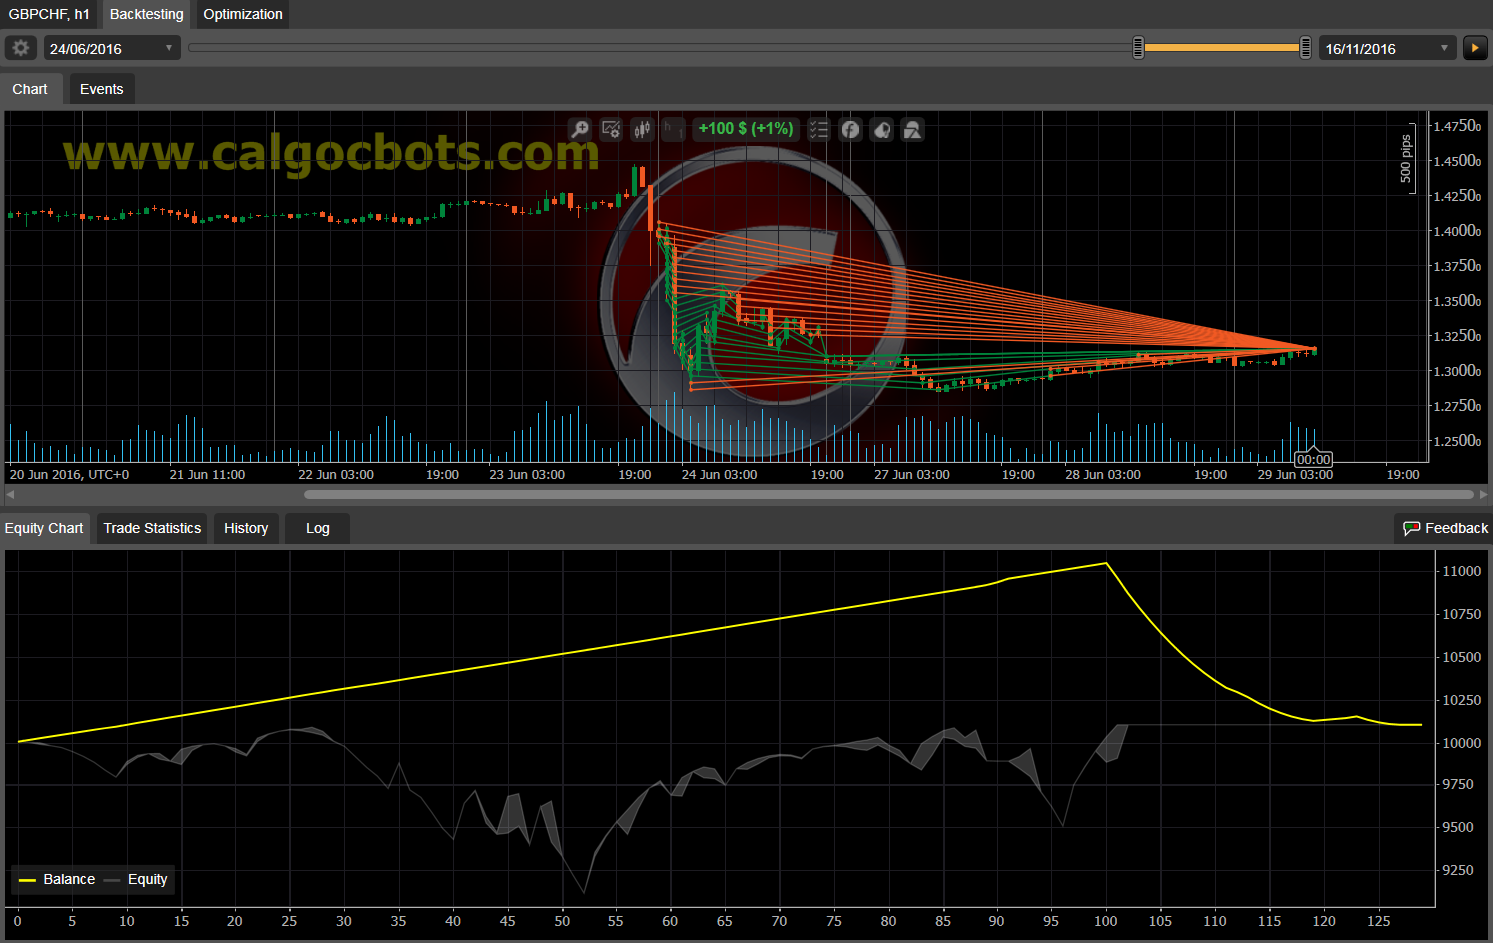 Dual Grid Hedge GBP CHF 1h cAlgo cBots cTrader 100 50 100 - 11 f